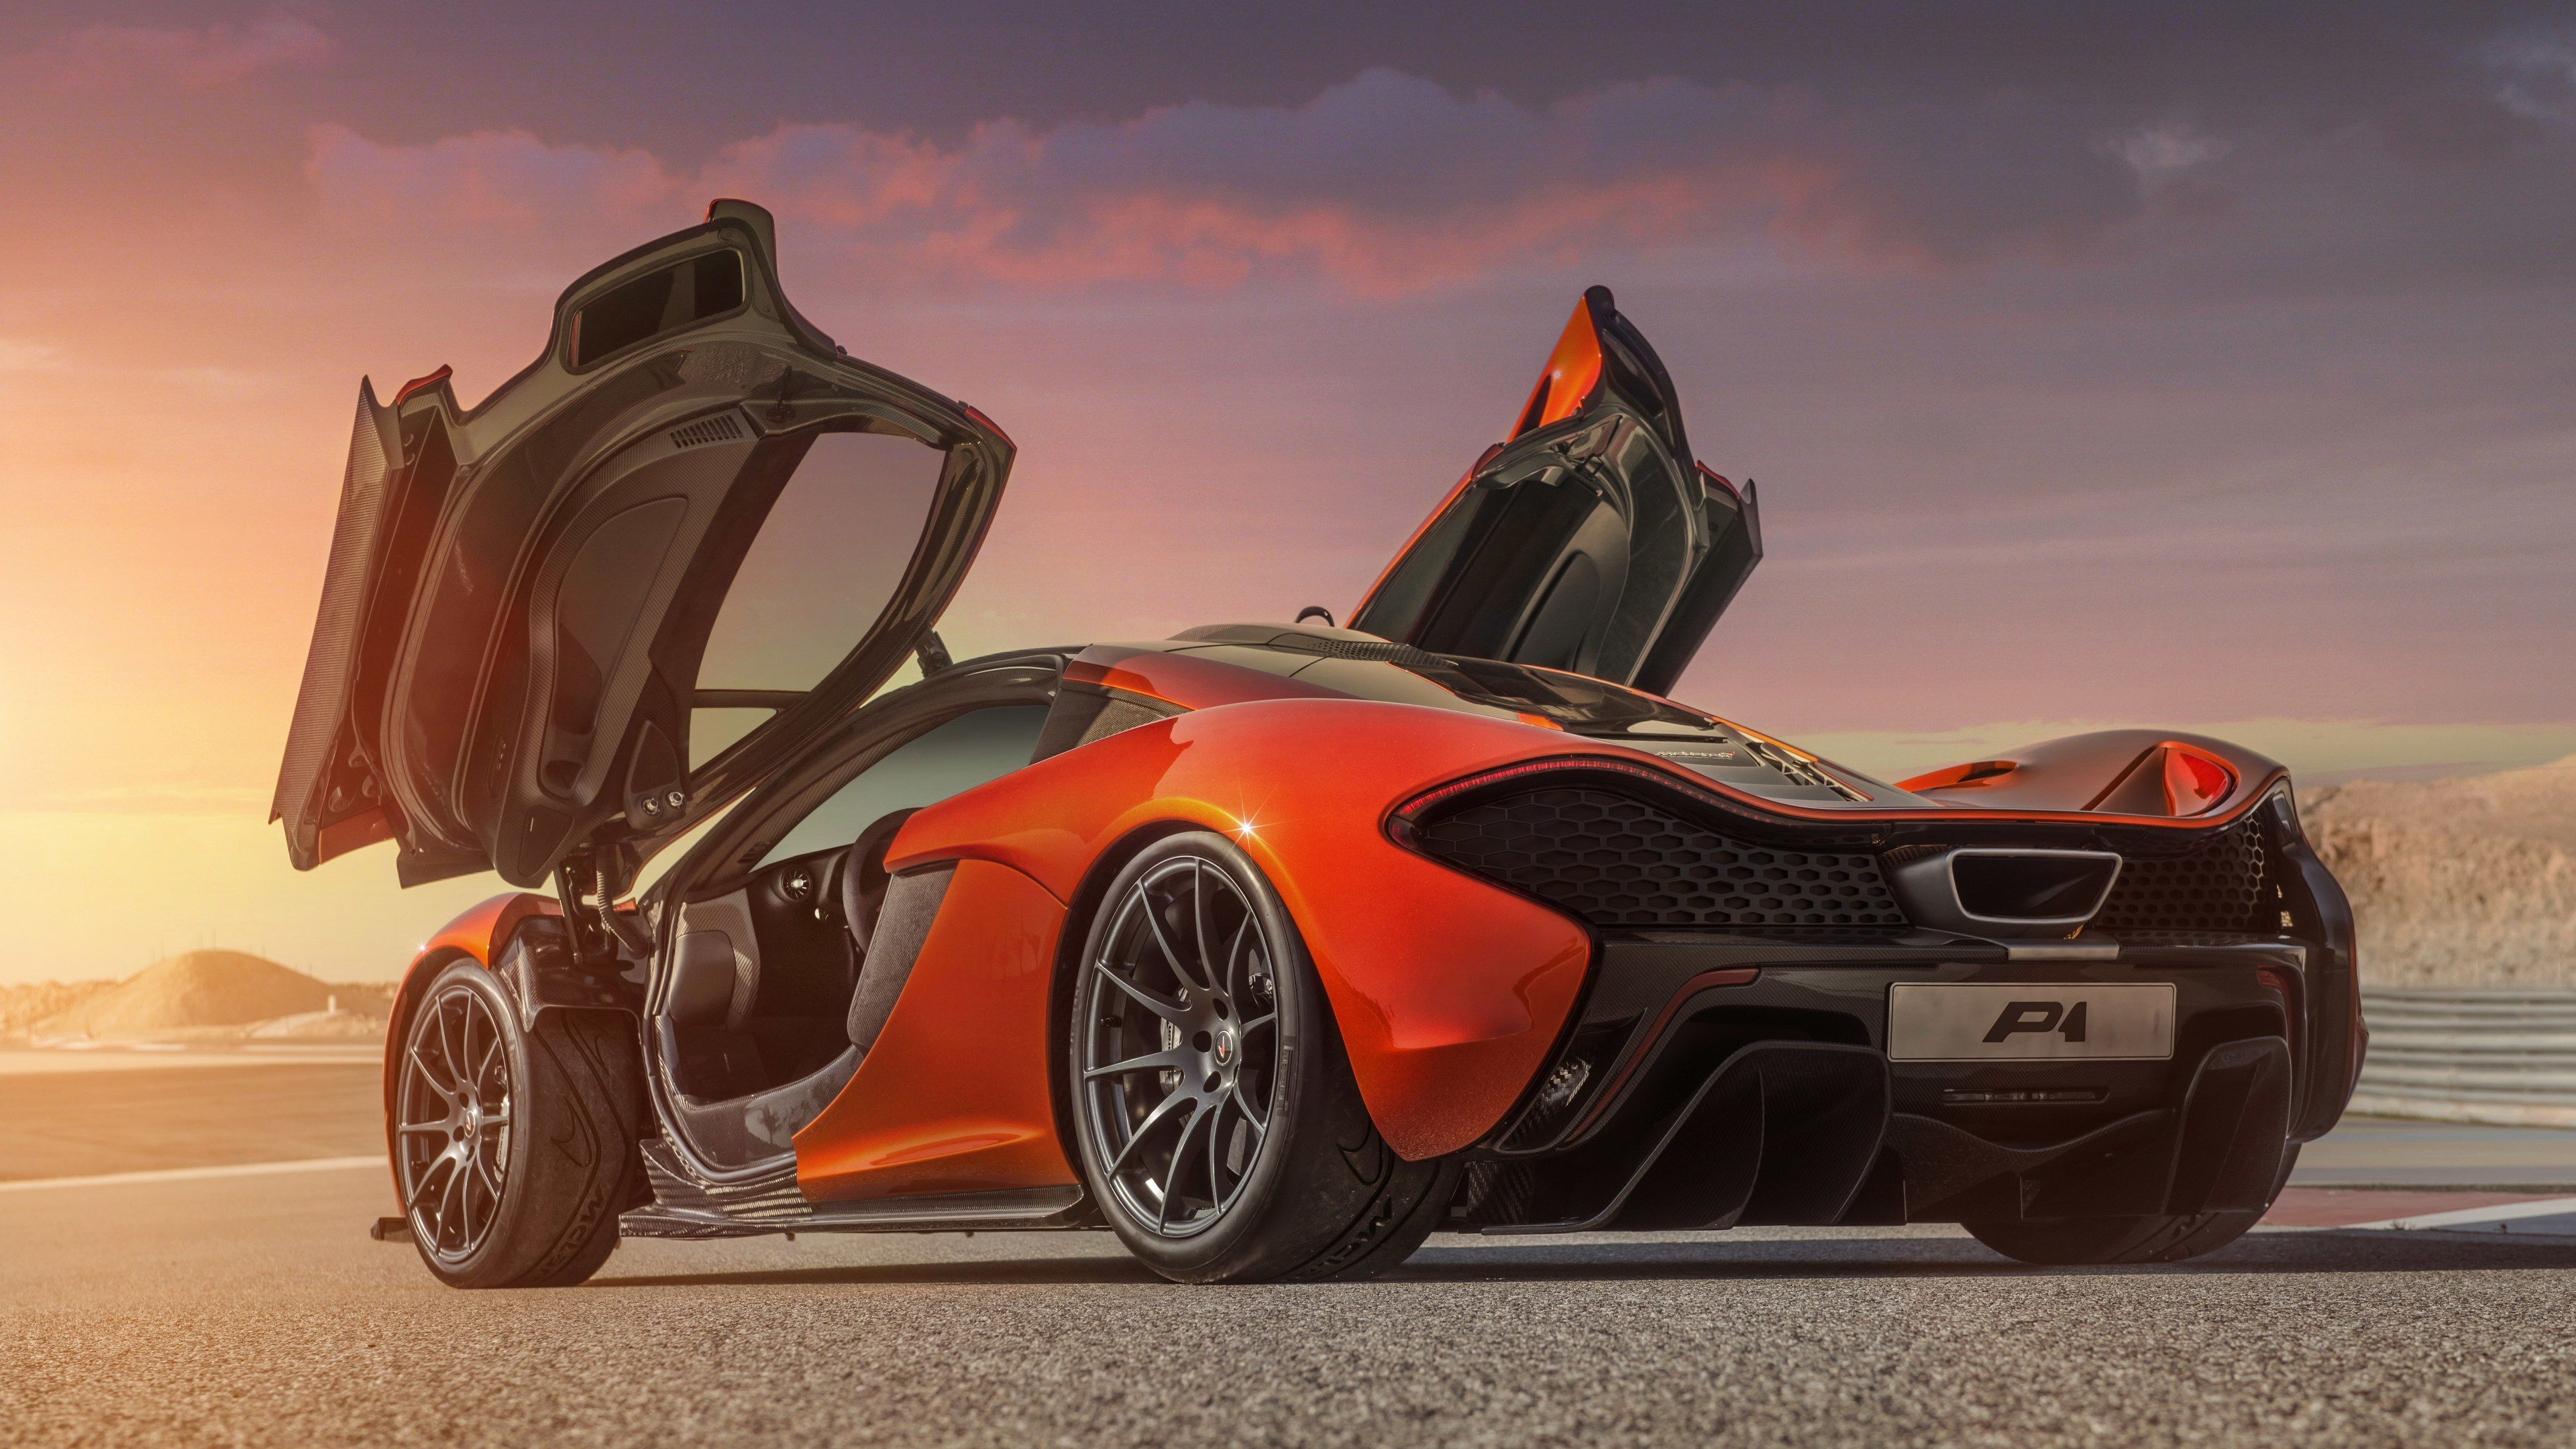 Whether you cover an entire room or a single wall, wallpaper will update your space and tie your home's look. Mclaren P1 Car Wallpapers Wallpaper Cave